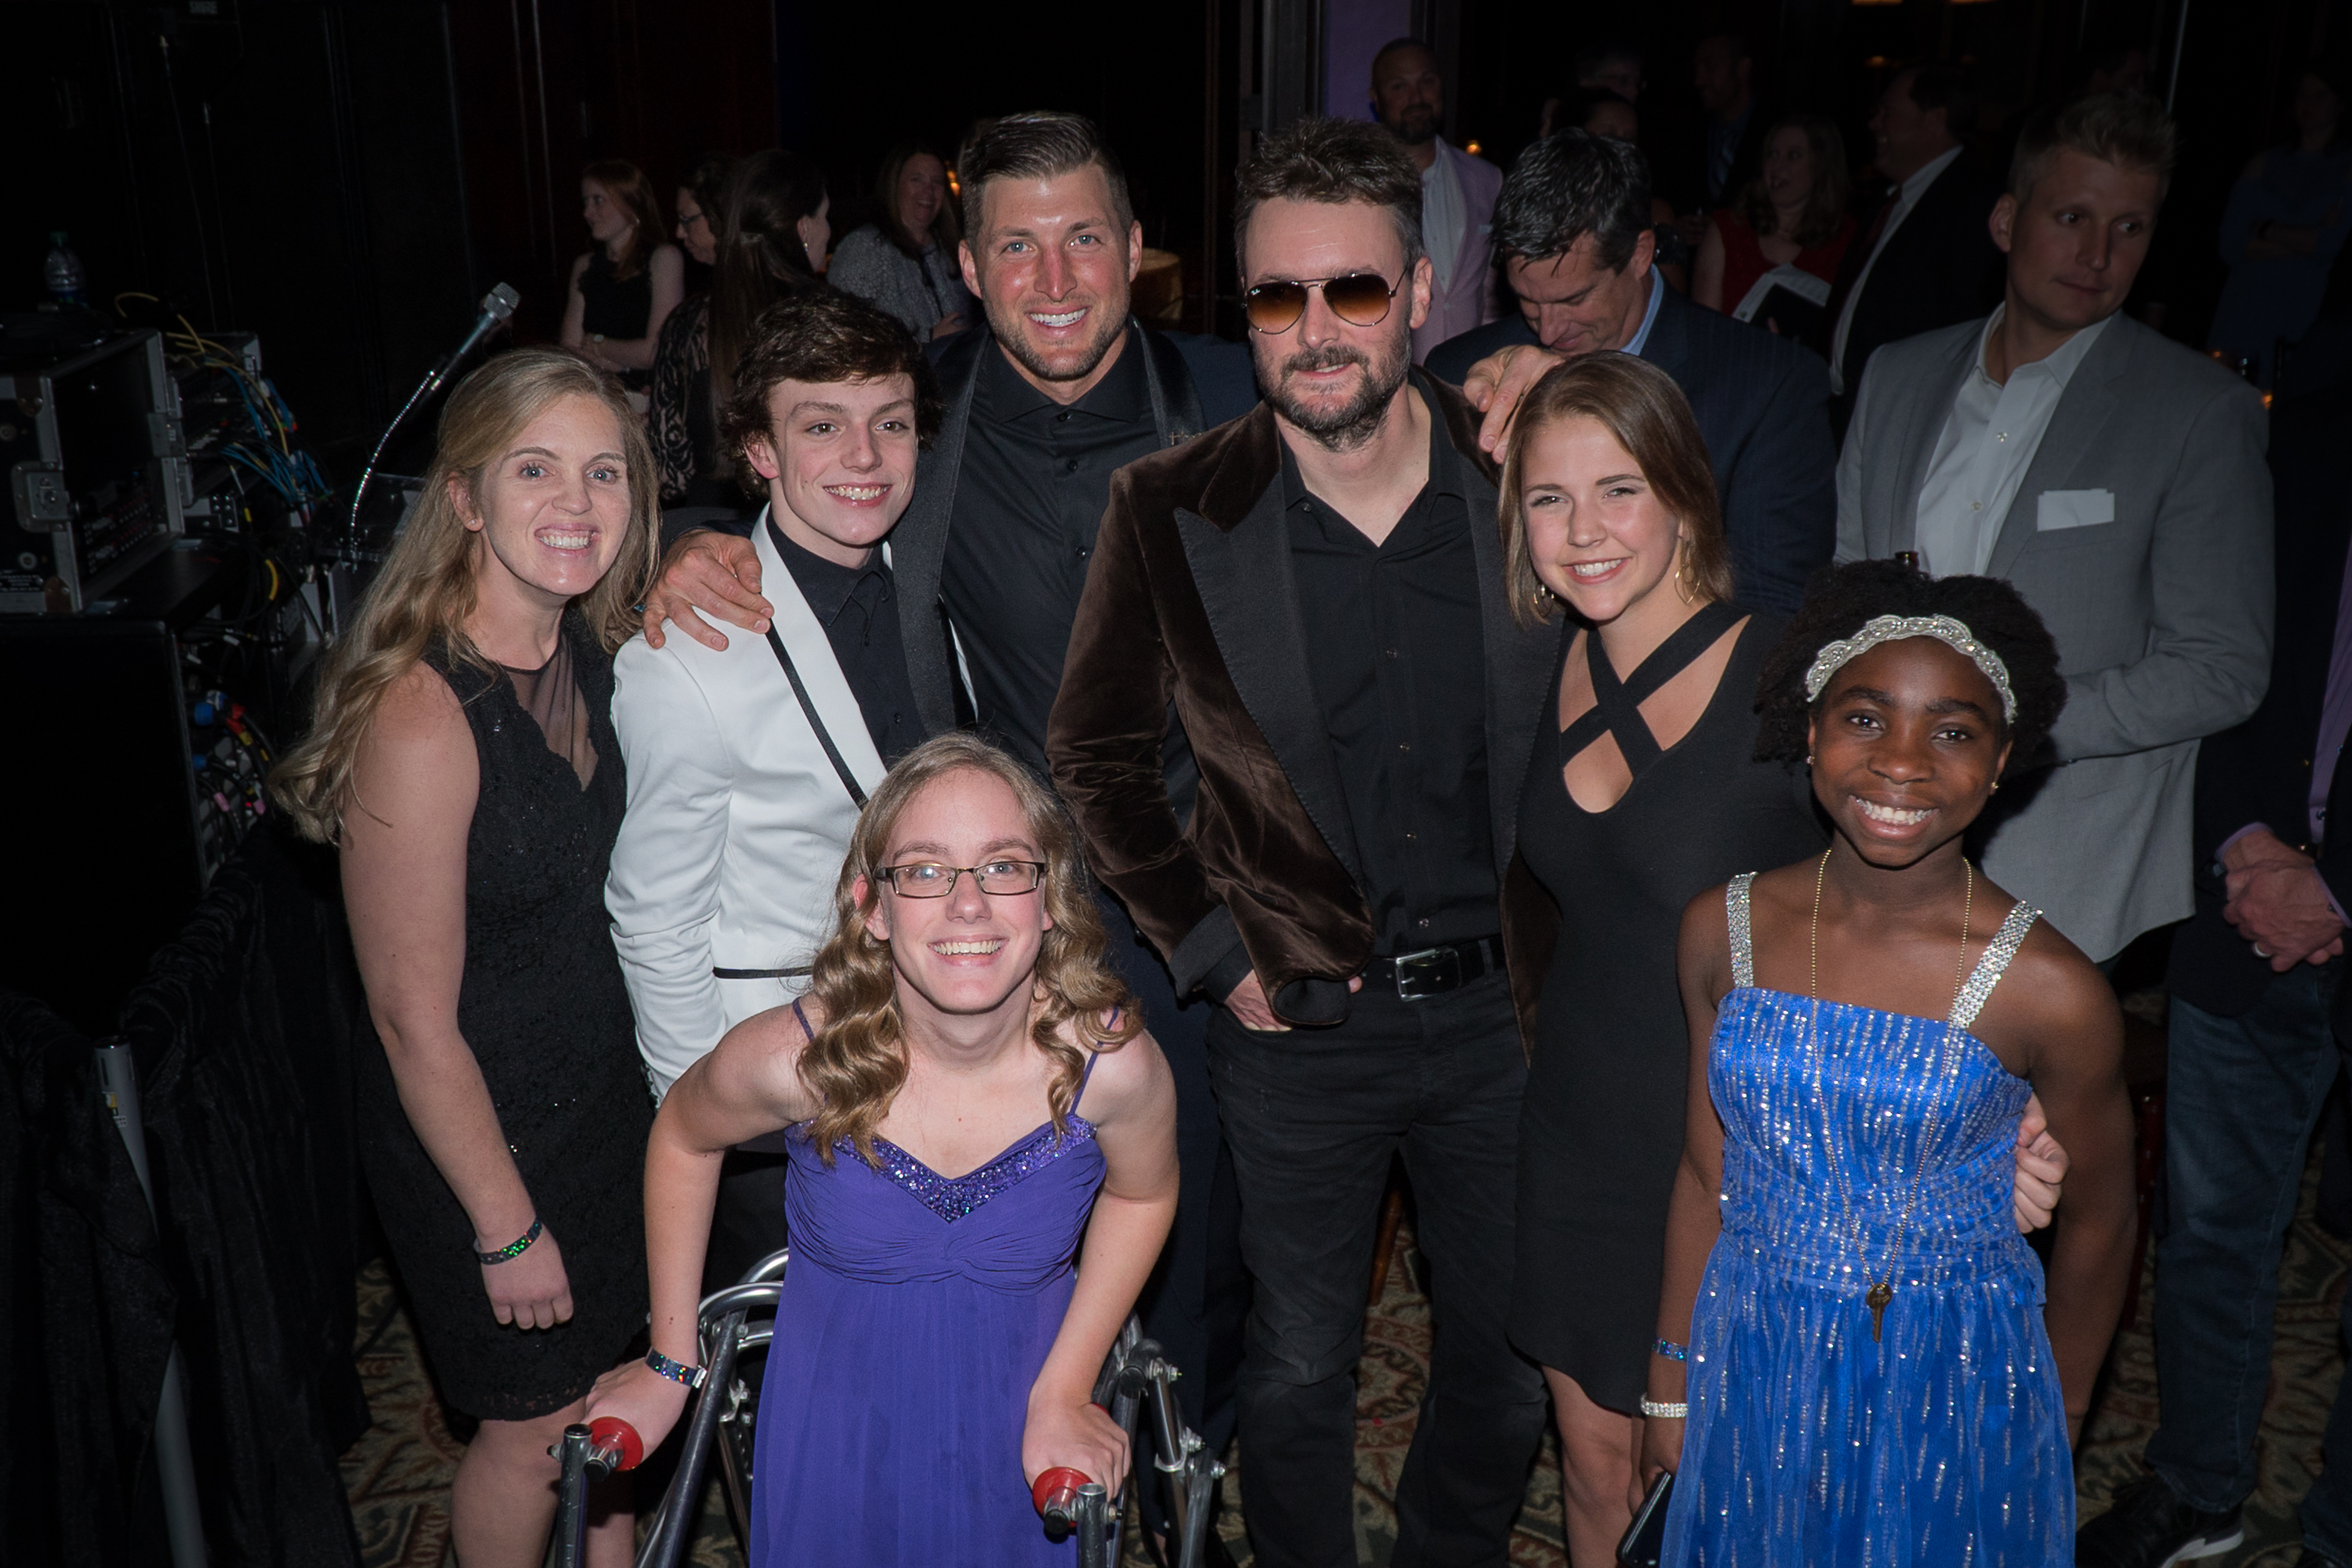 Erich_Church__Tim_Tebow_pose_with_TTF_ Managedry_guests.jpg